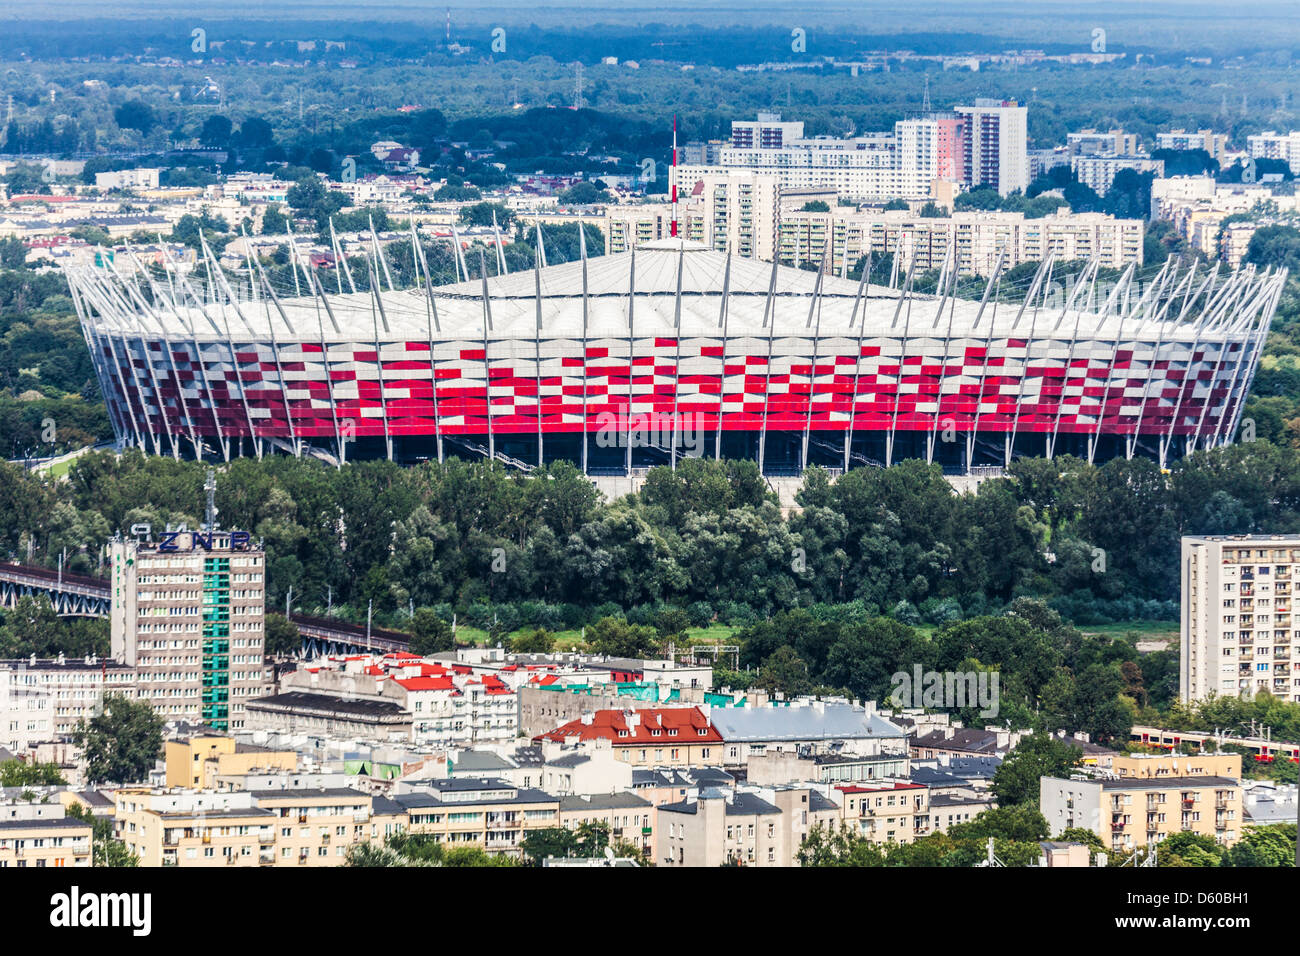 View of the National Stadium, Stadion Narodowy in Warsaw, Poland. - Stock Image